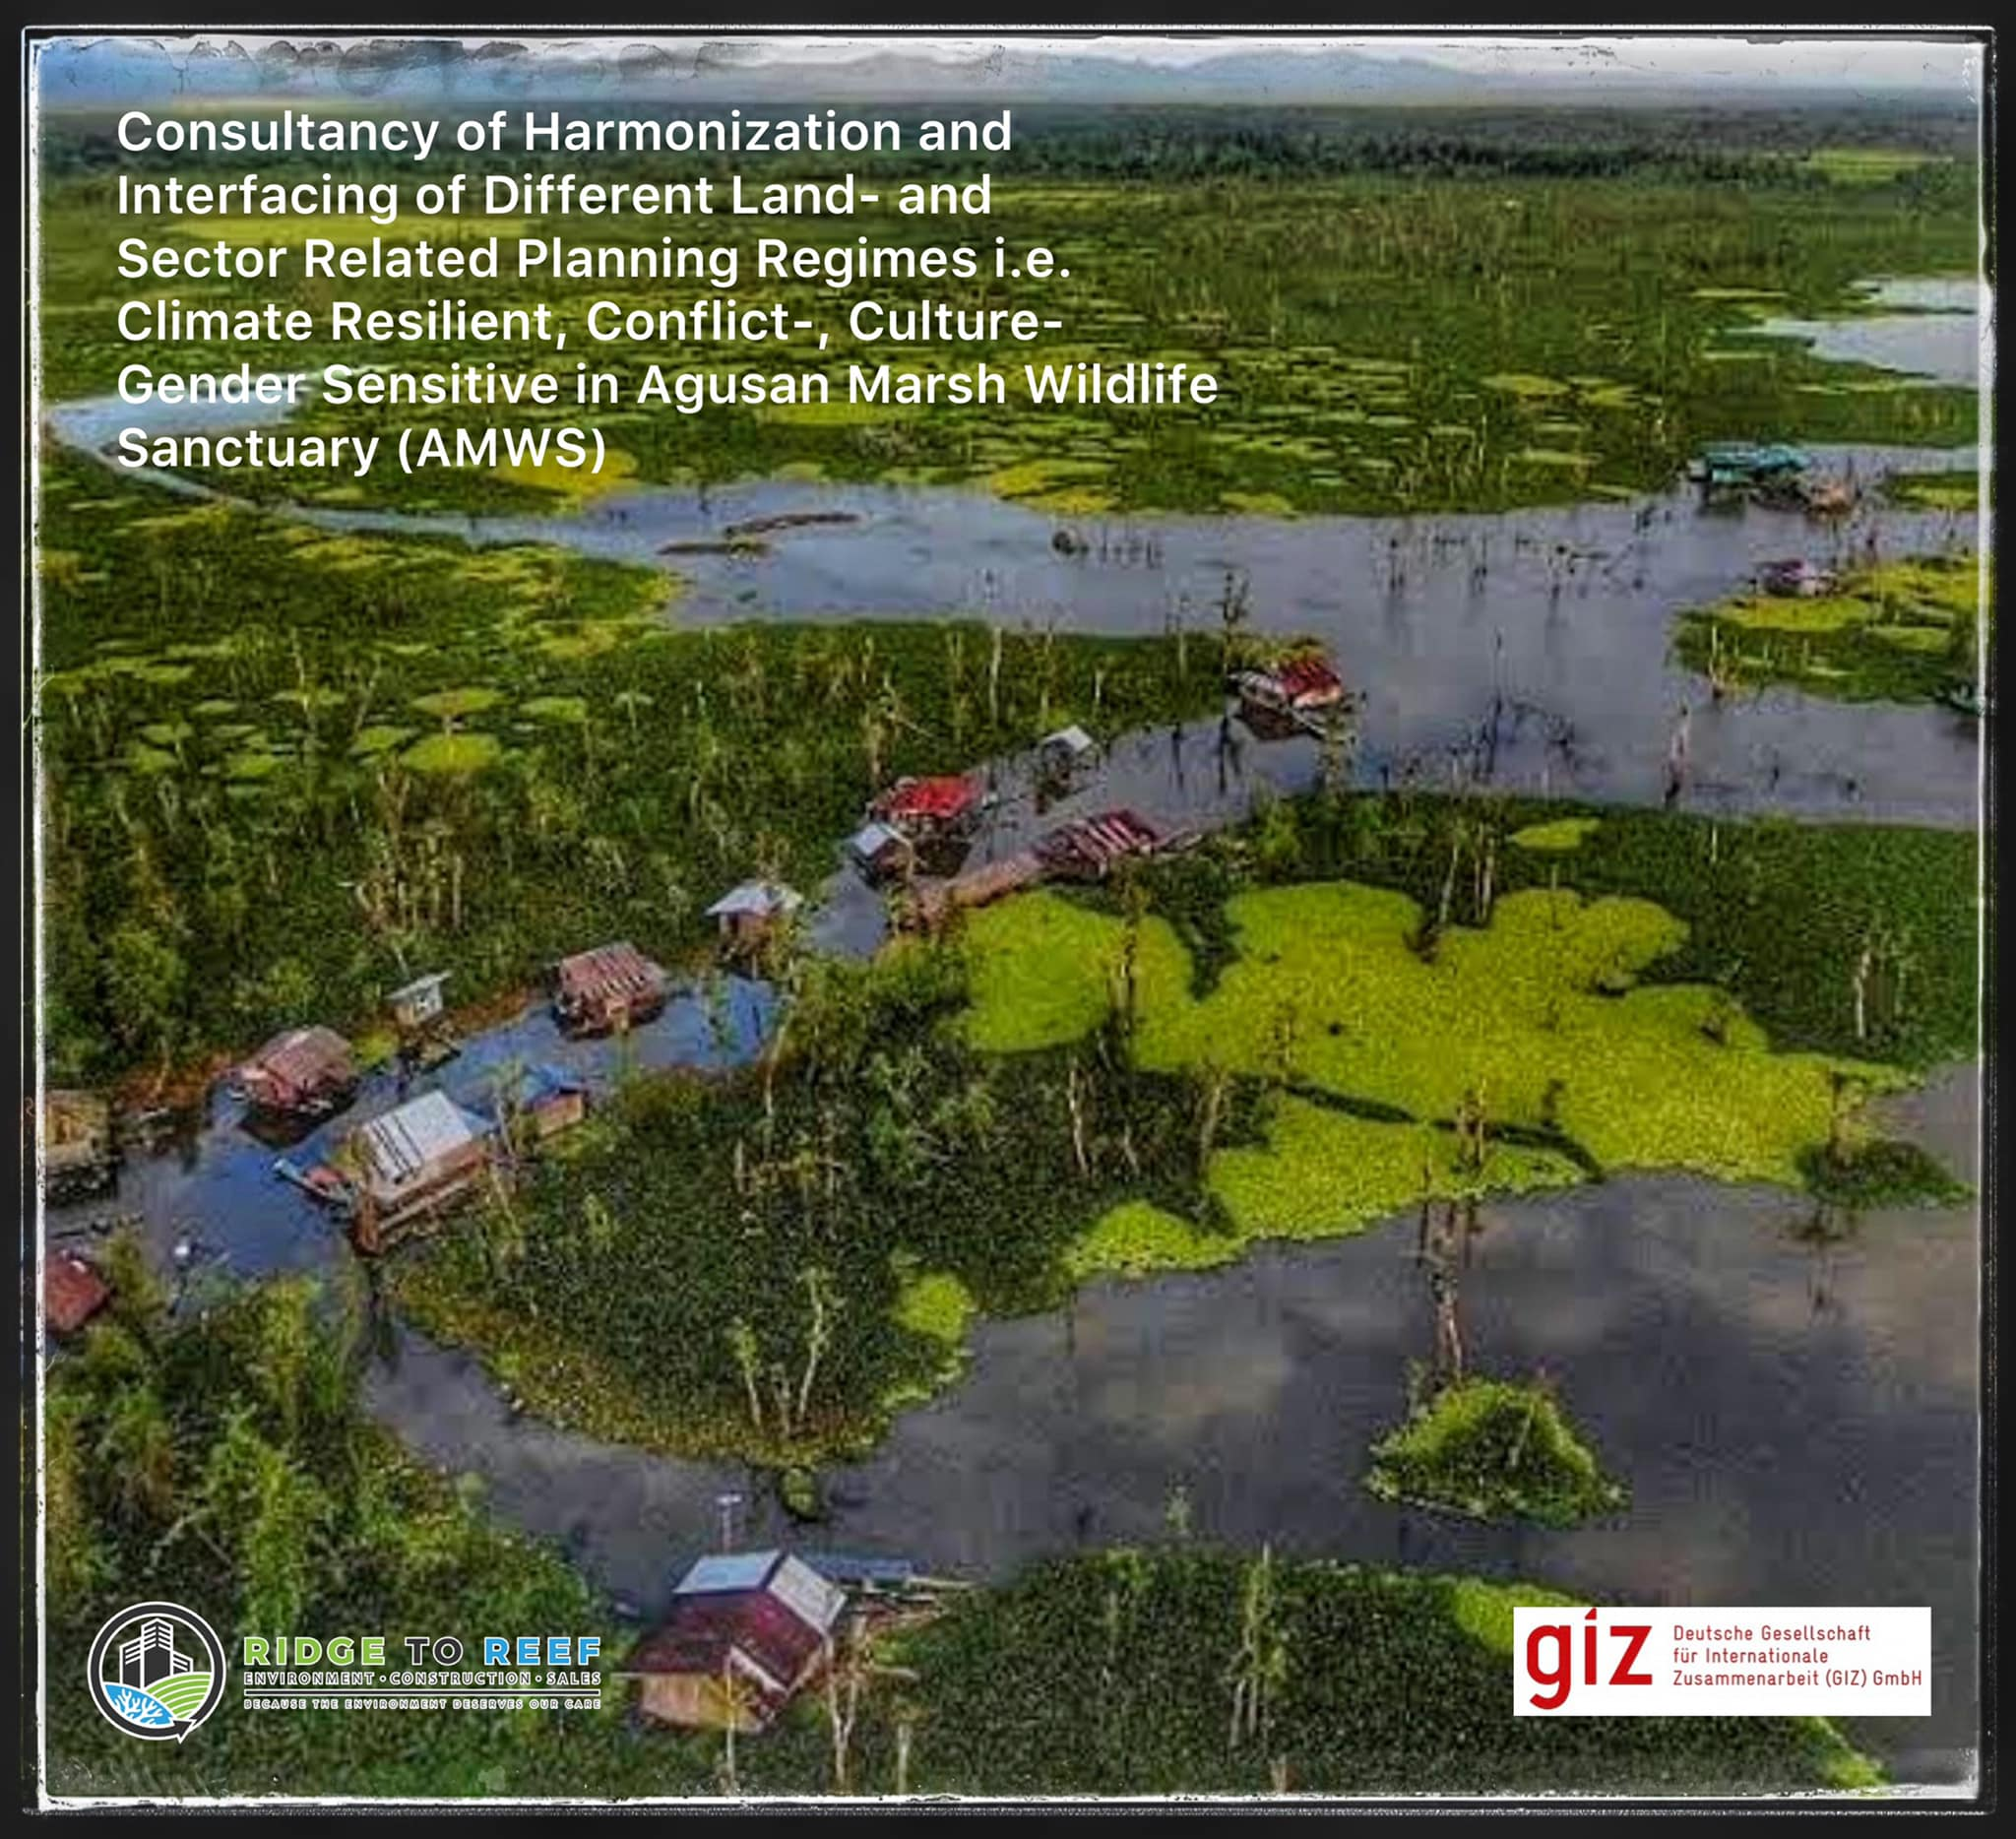 R2R will undertake a project funded by GIZ for the Consultancy on Harmonization and Interfacing of Different Land in Agusan Marsh Wildlife Sanctuary (AMWS)